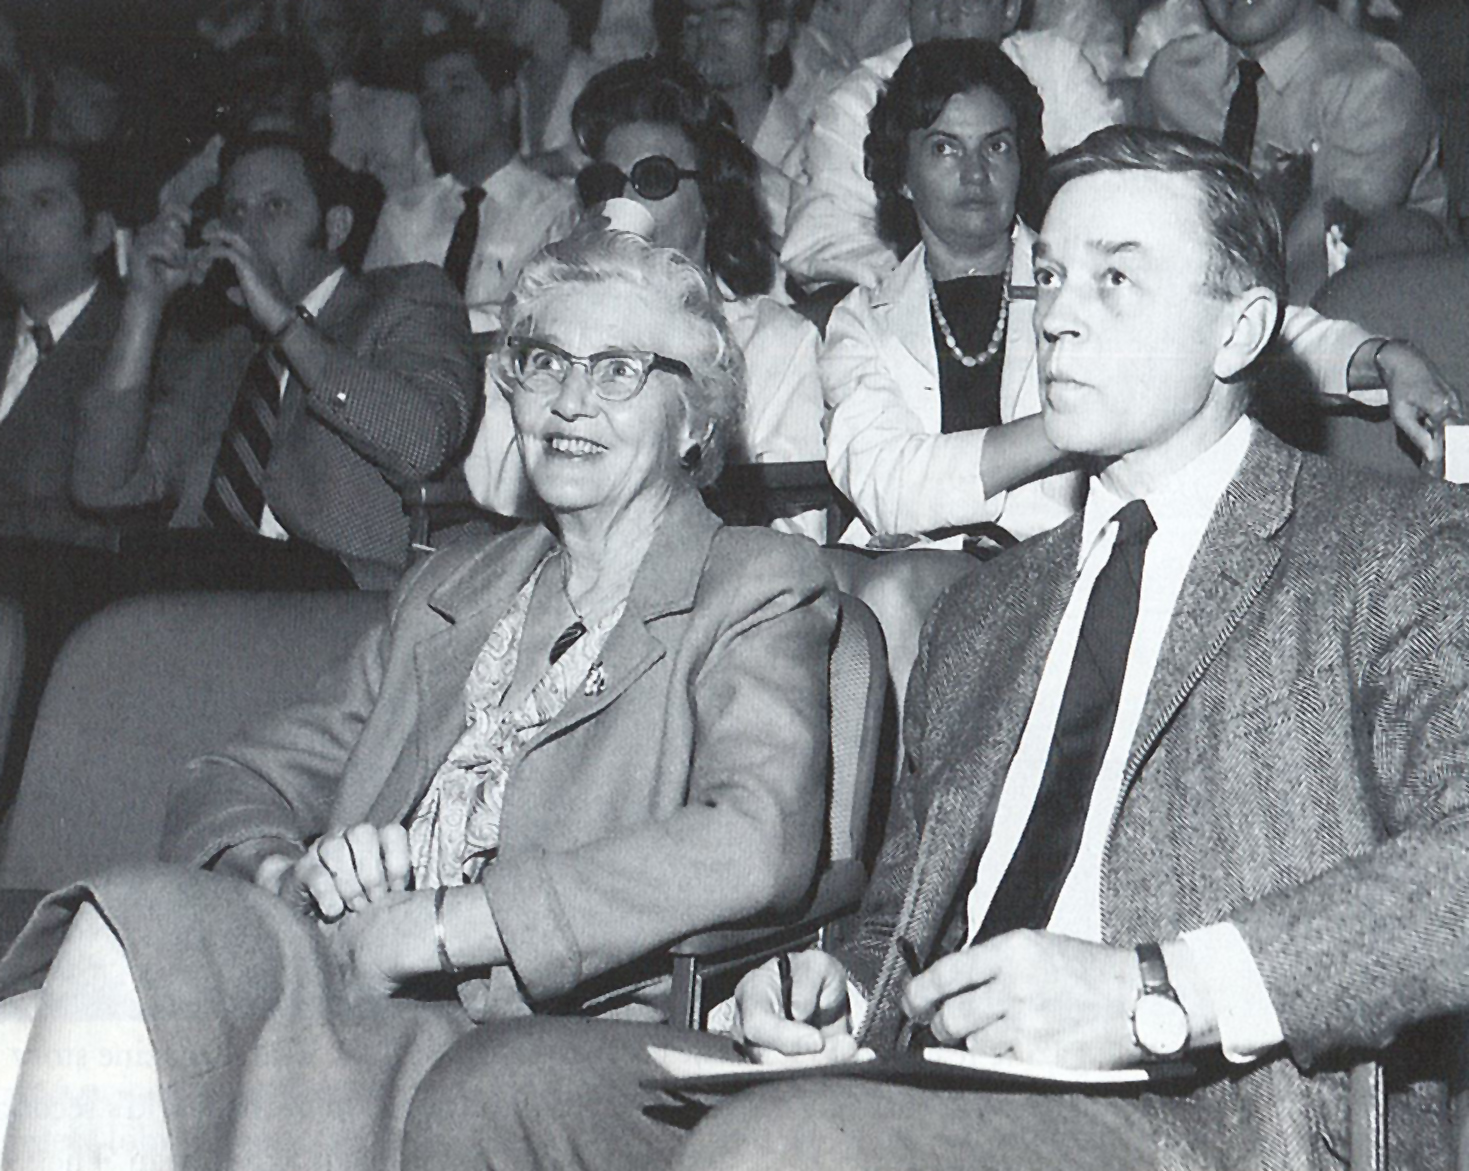 Dr. Helen Taussig and Dr. Dan McNamara at the Texas Heart Institute in March 1970. Dr. Taussig was attending a conference at THI.